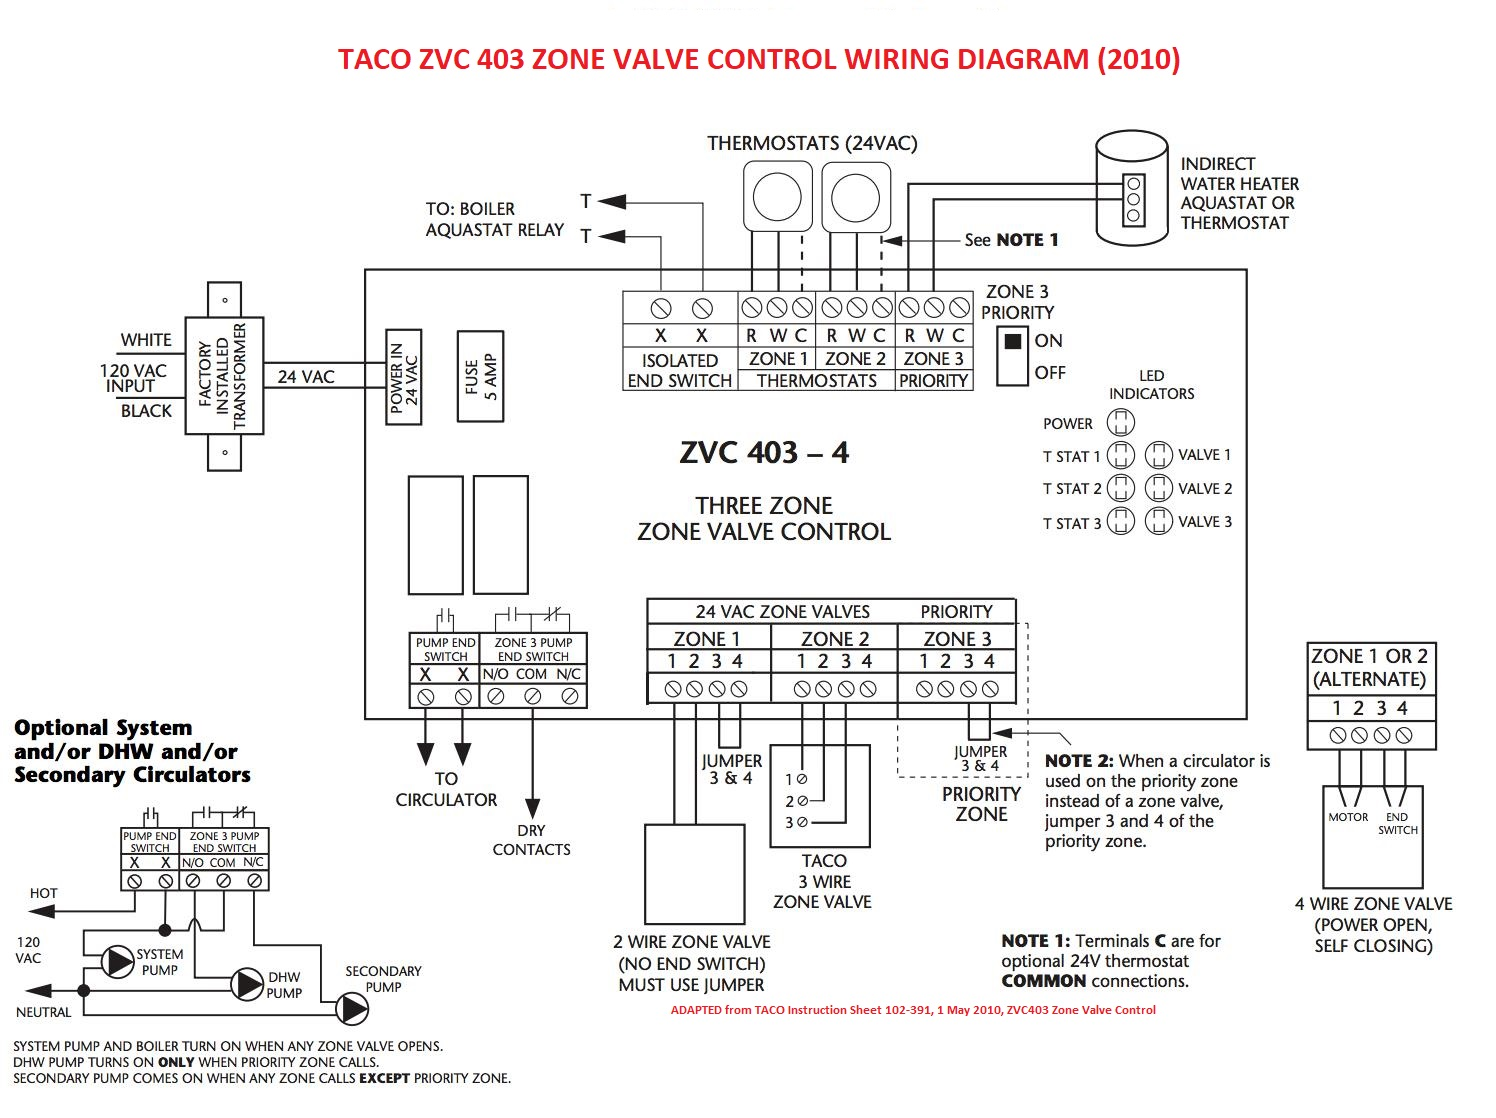 Central Heating And Hot Water Electrical Diagram: Zone Valve Wiring Installation 6 Instructions: Guide to heating rh:inspectapedia.com,Design